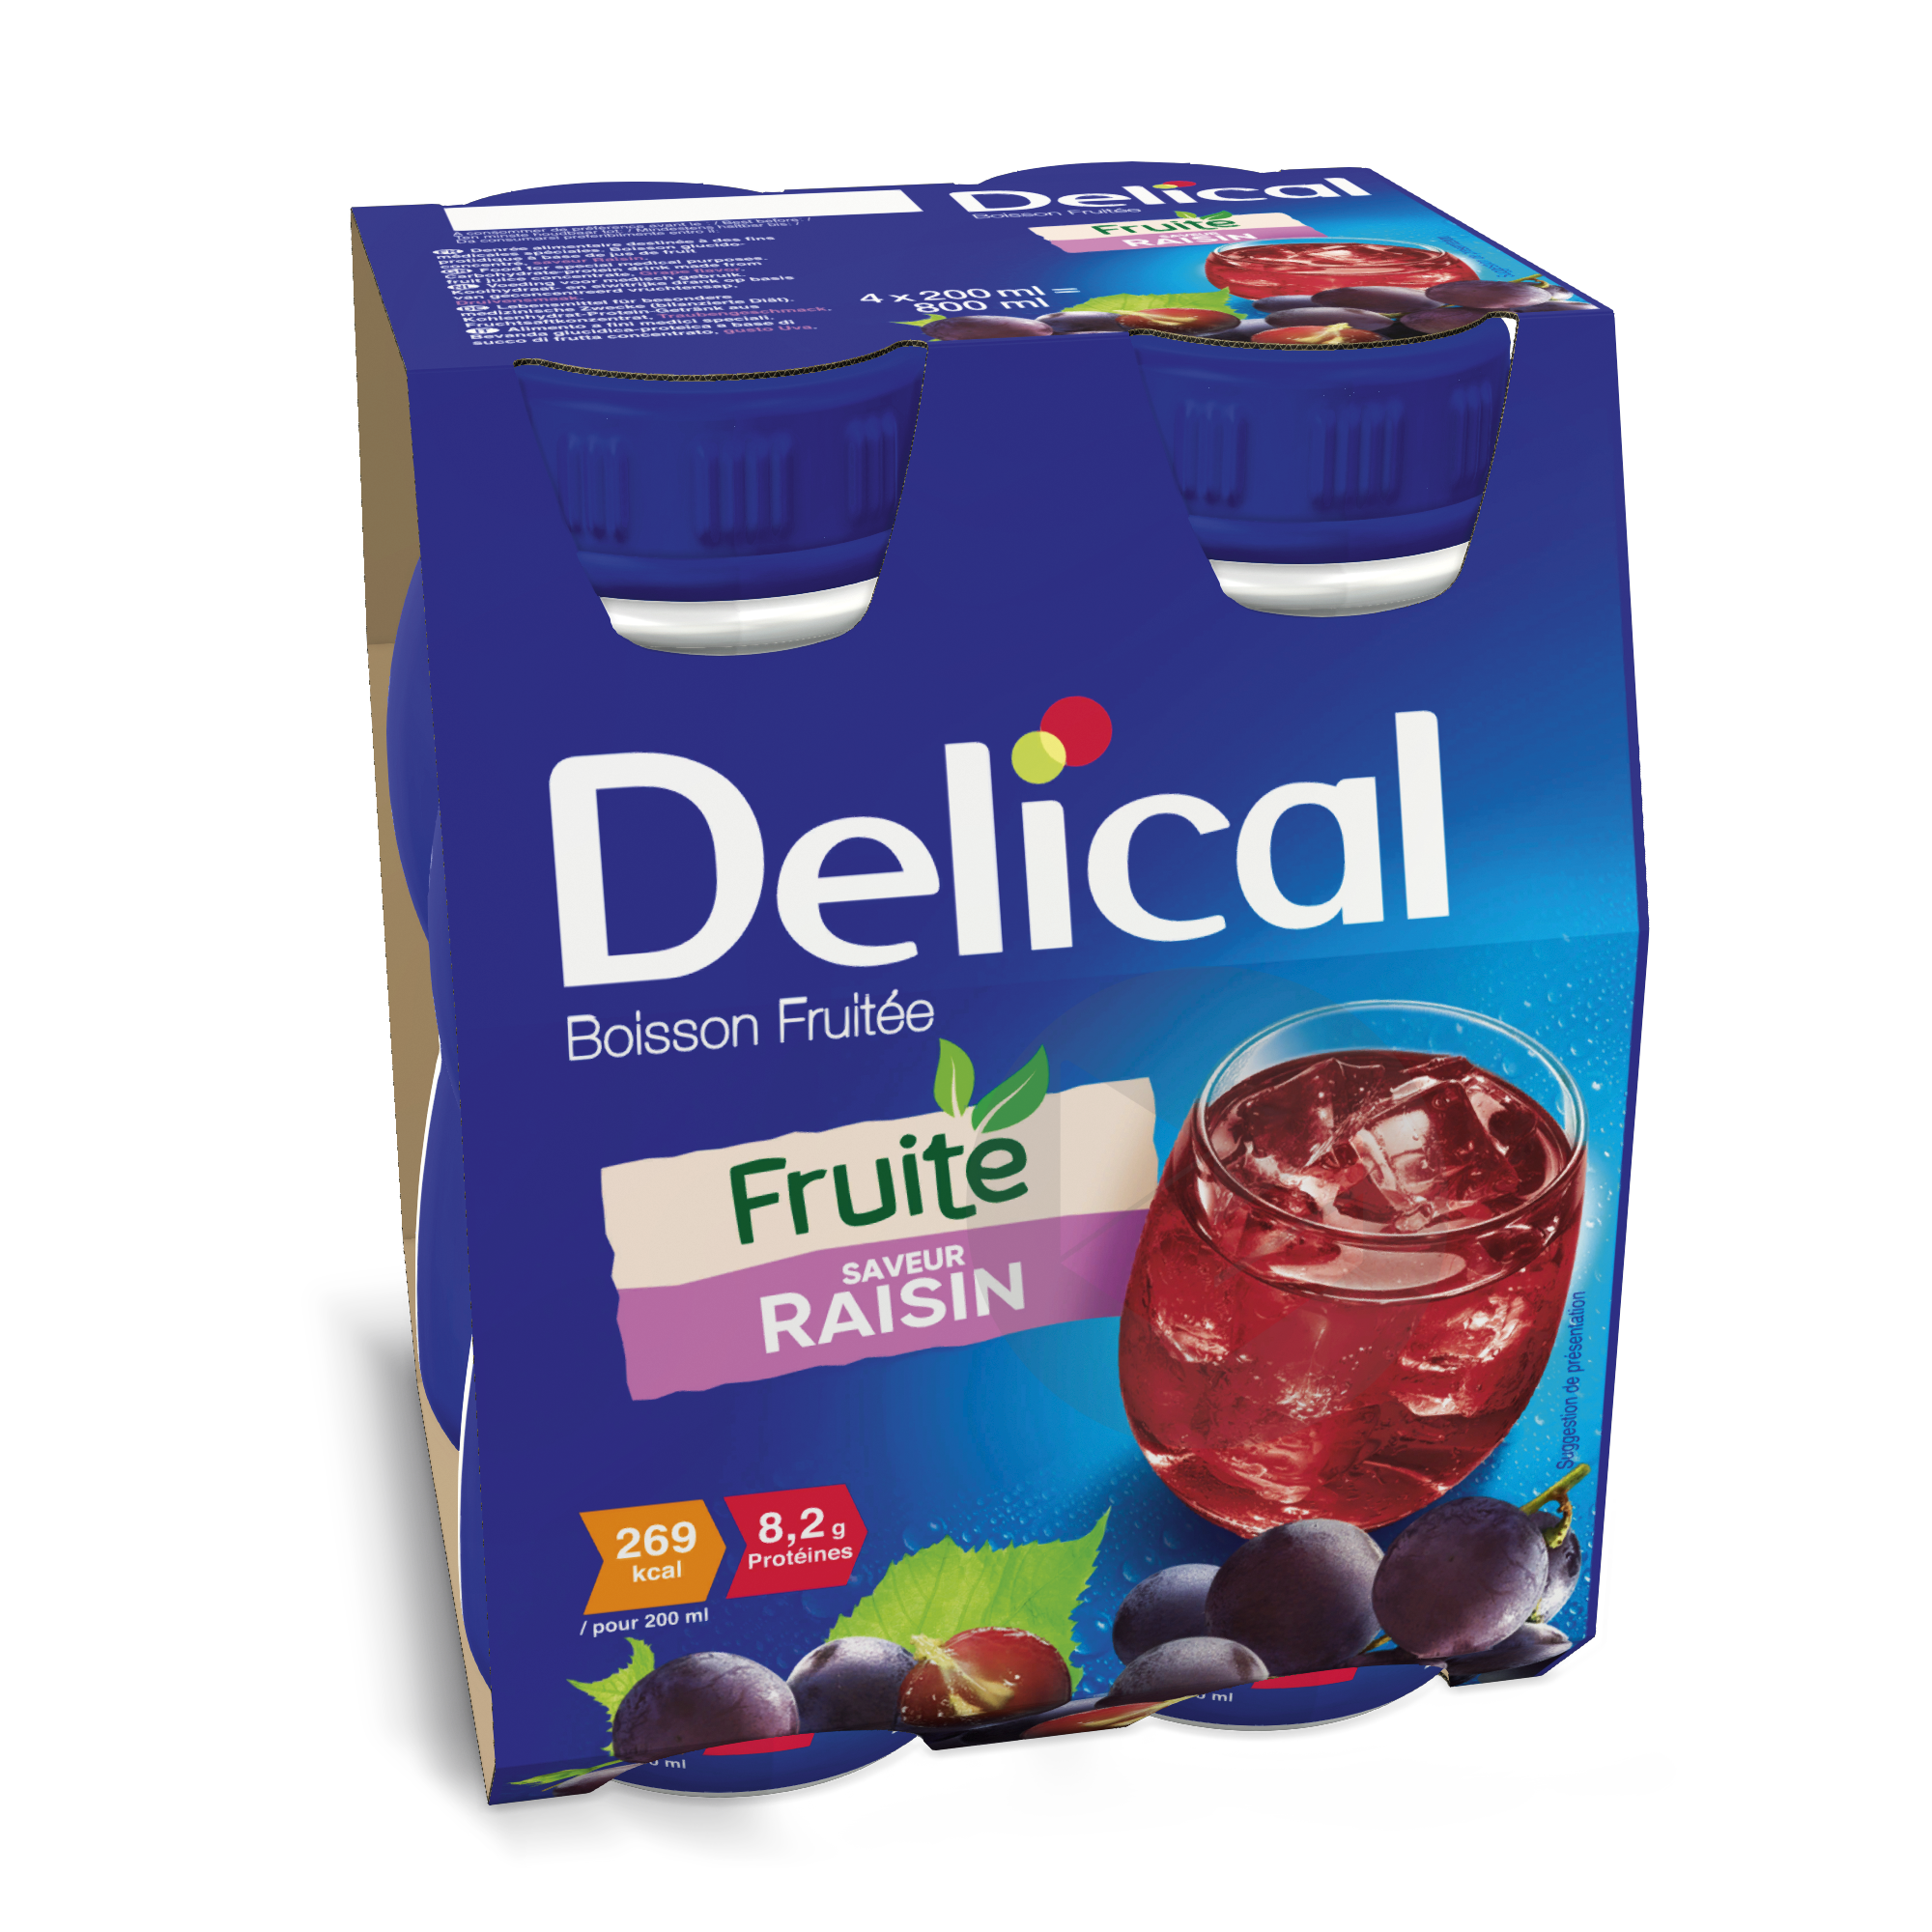 Delical Boisson Fruitee Raisin